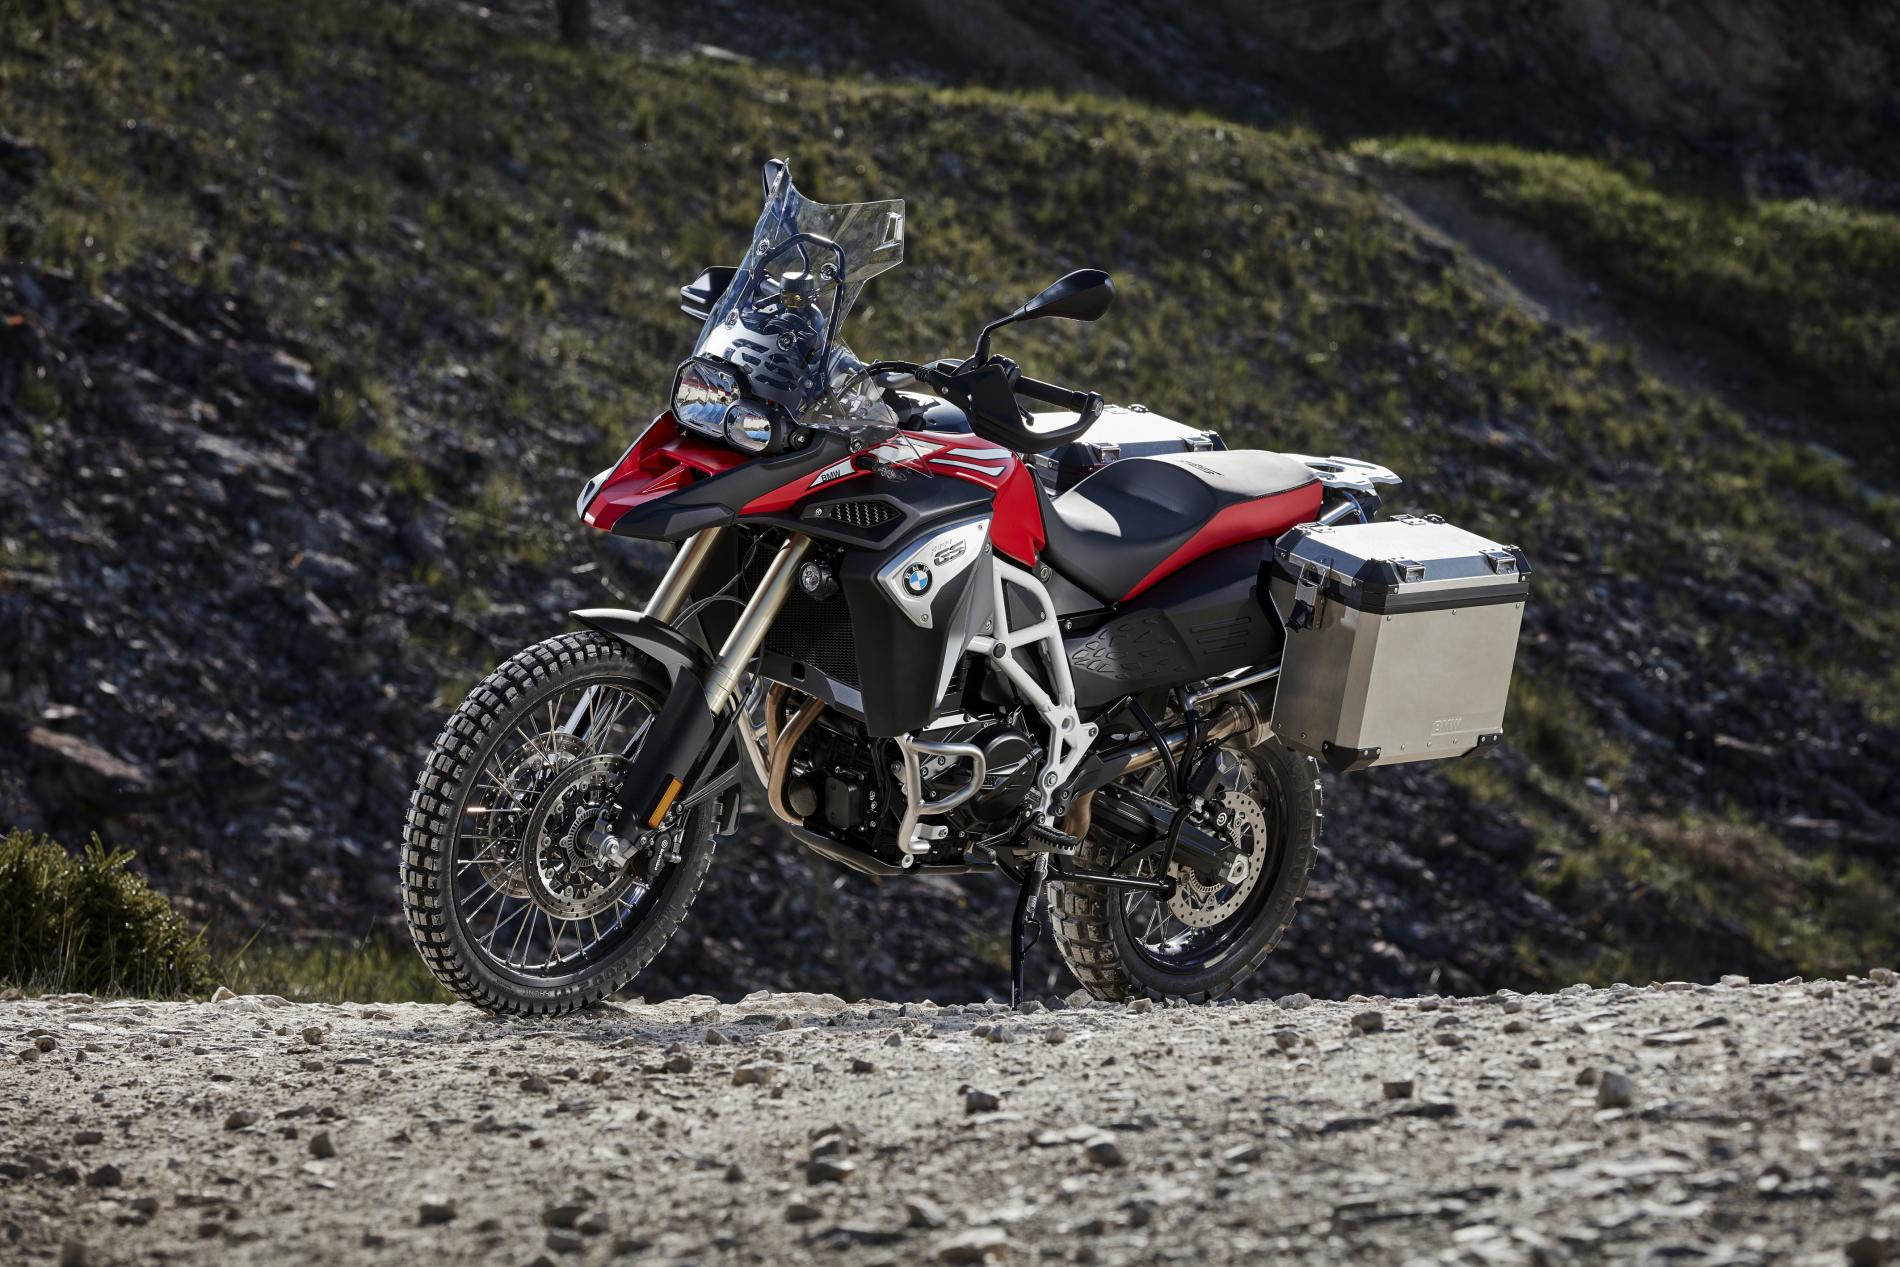 BMW F 800 GS ADVENTURE - medium